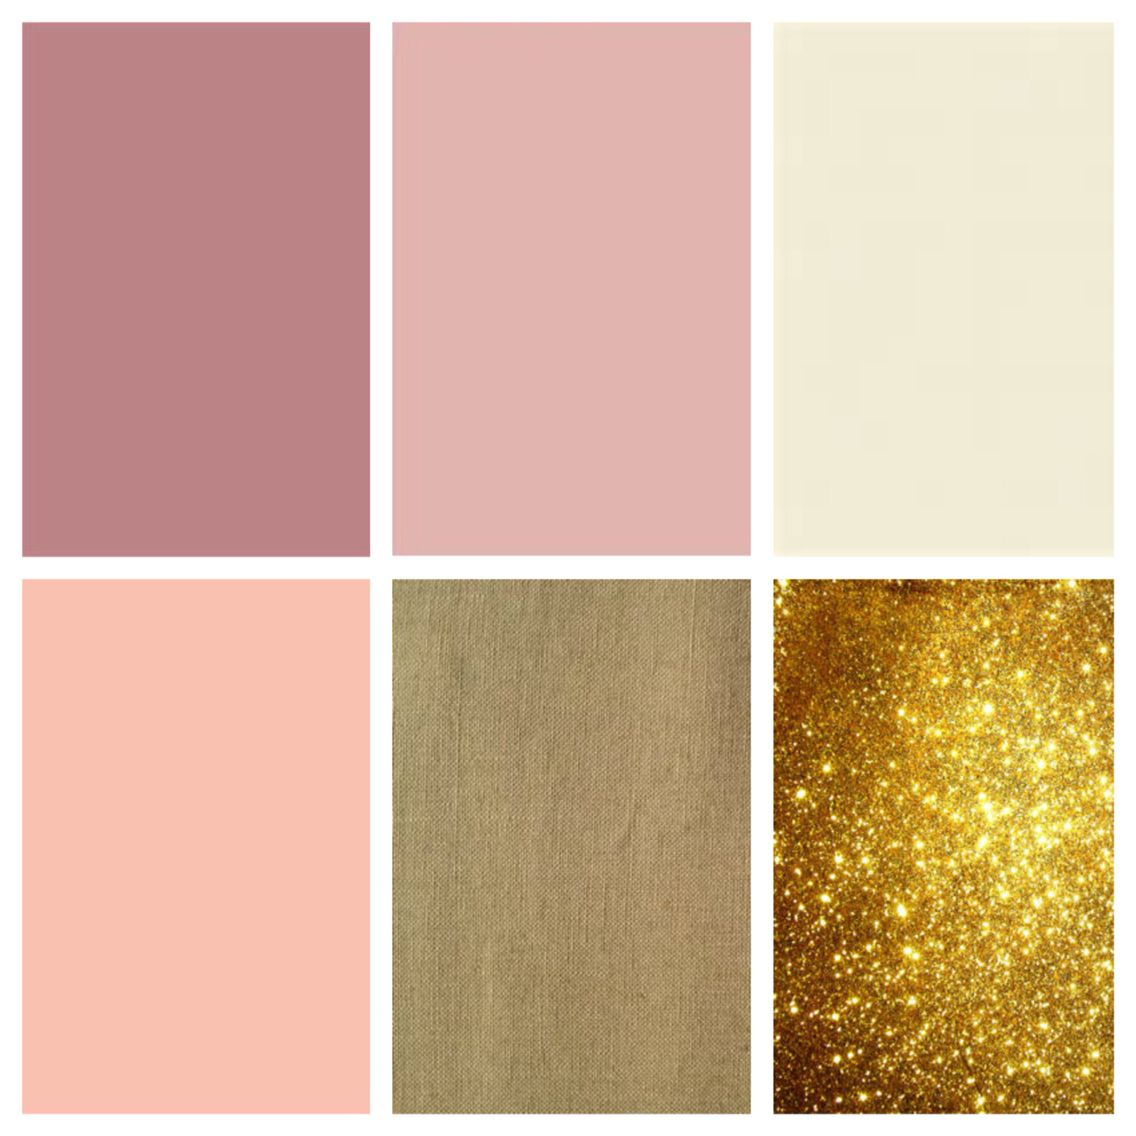 This Schematic Cream Blush Dusty Rose Burlap And Gold Or Rose